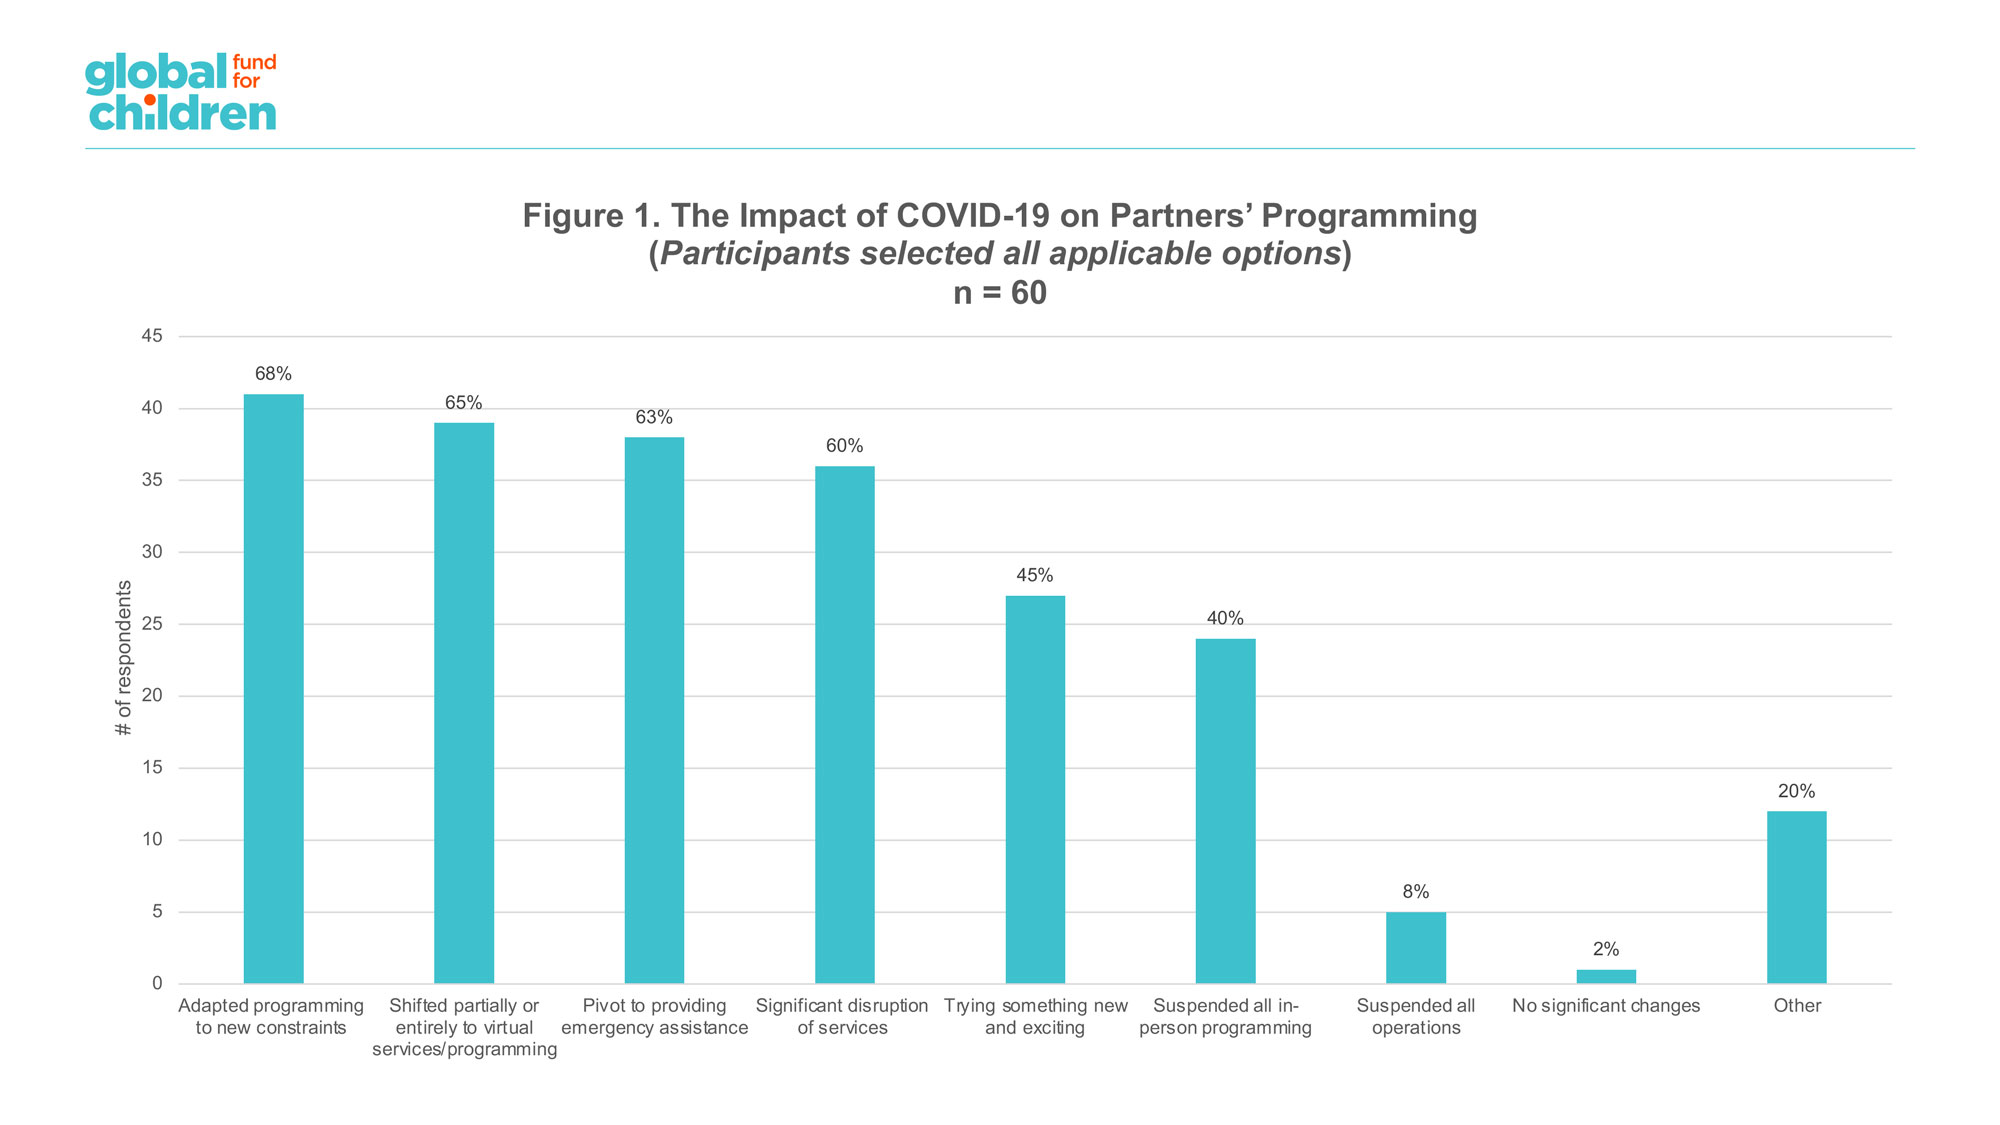 Figure 1. The Impact of COVID-19 on Partners' Programming